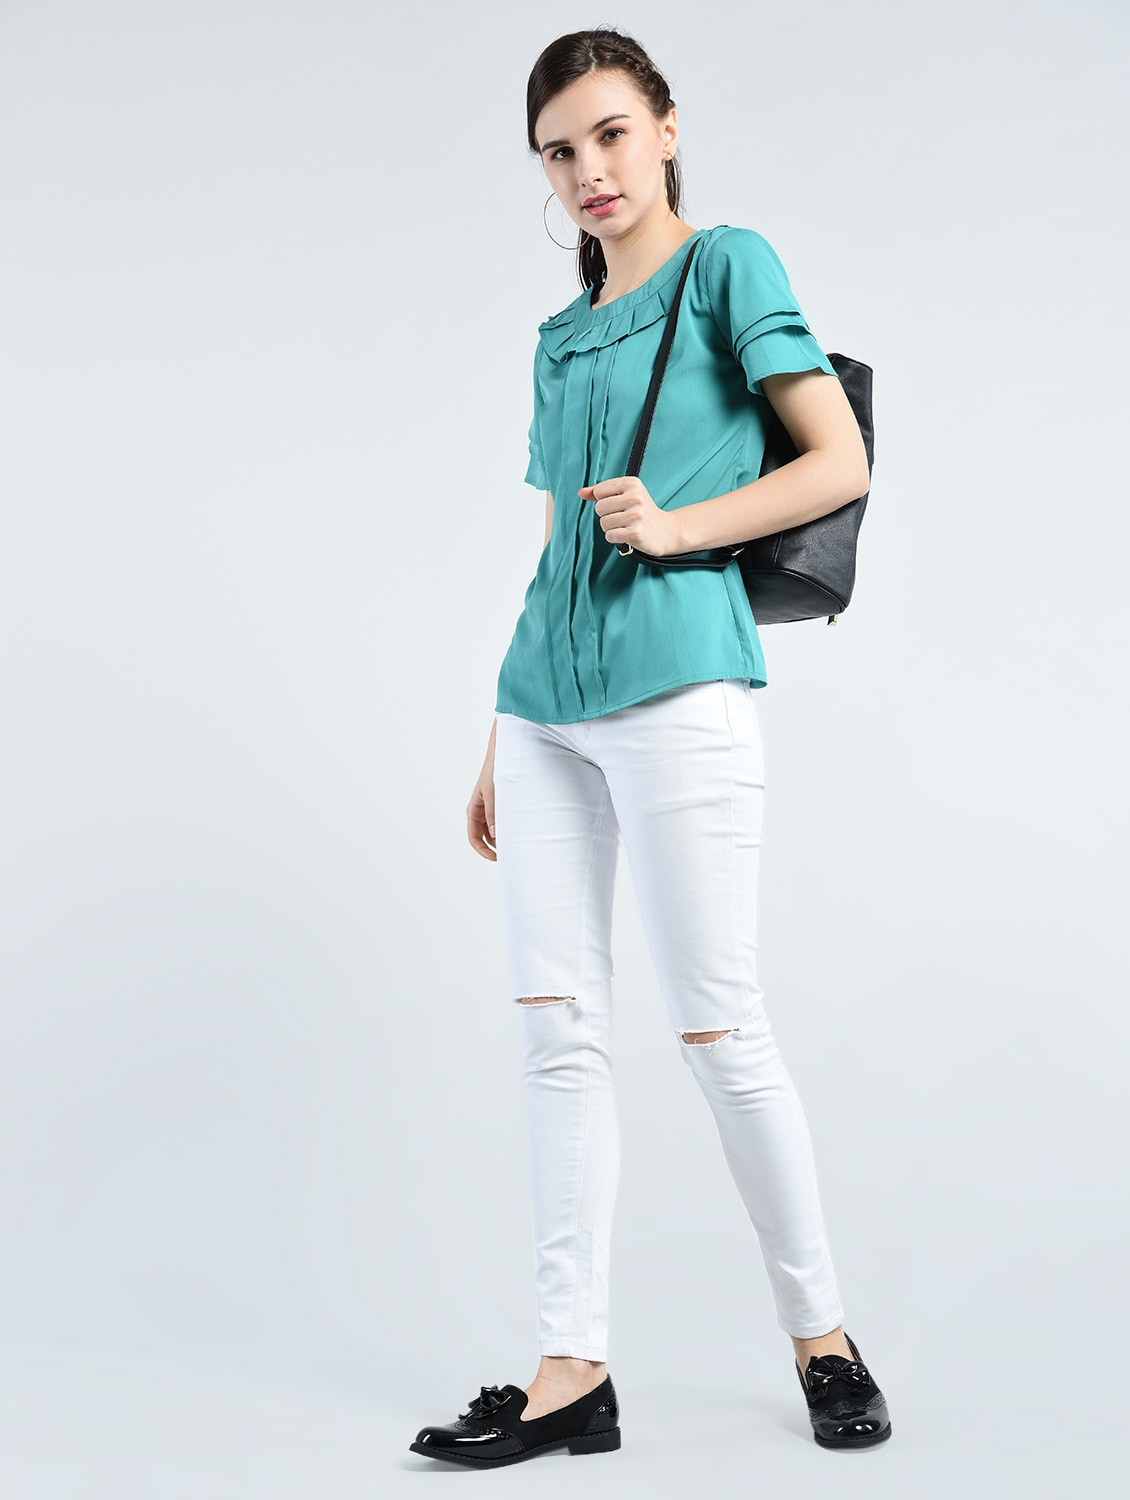 c457fa27d37d6f Buy Blue Crepe Casual Top by Kubes - Online shopping for Tops in India |  14342325